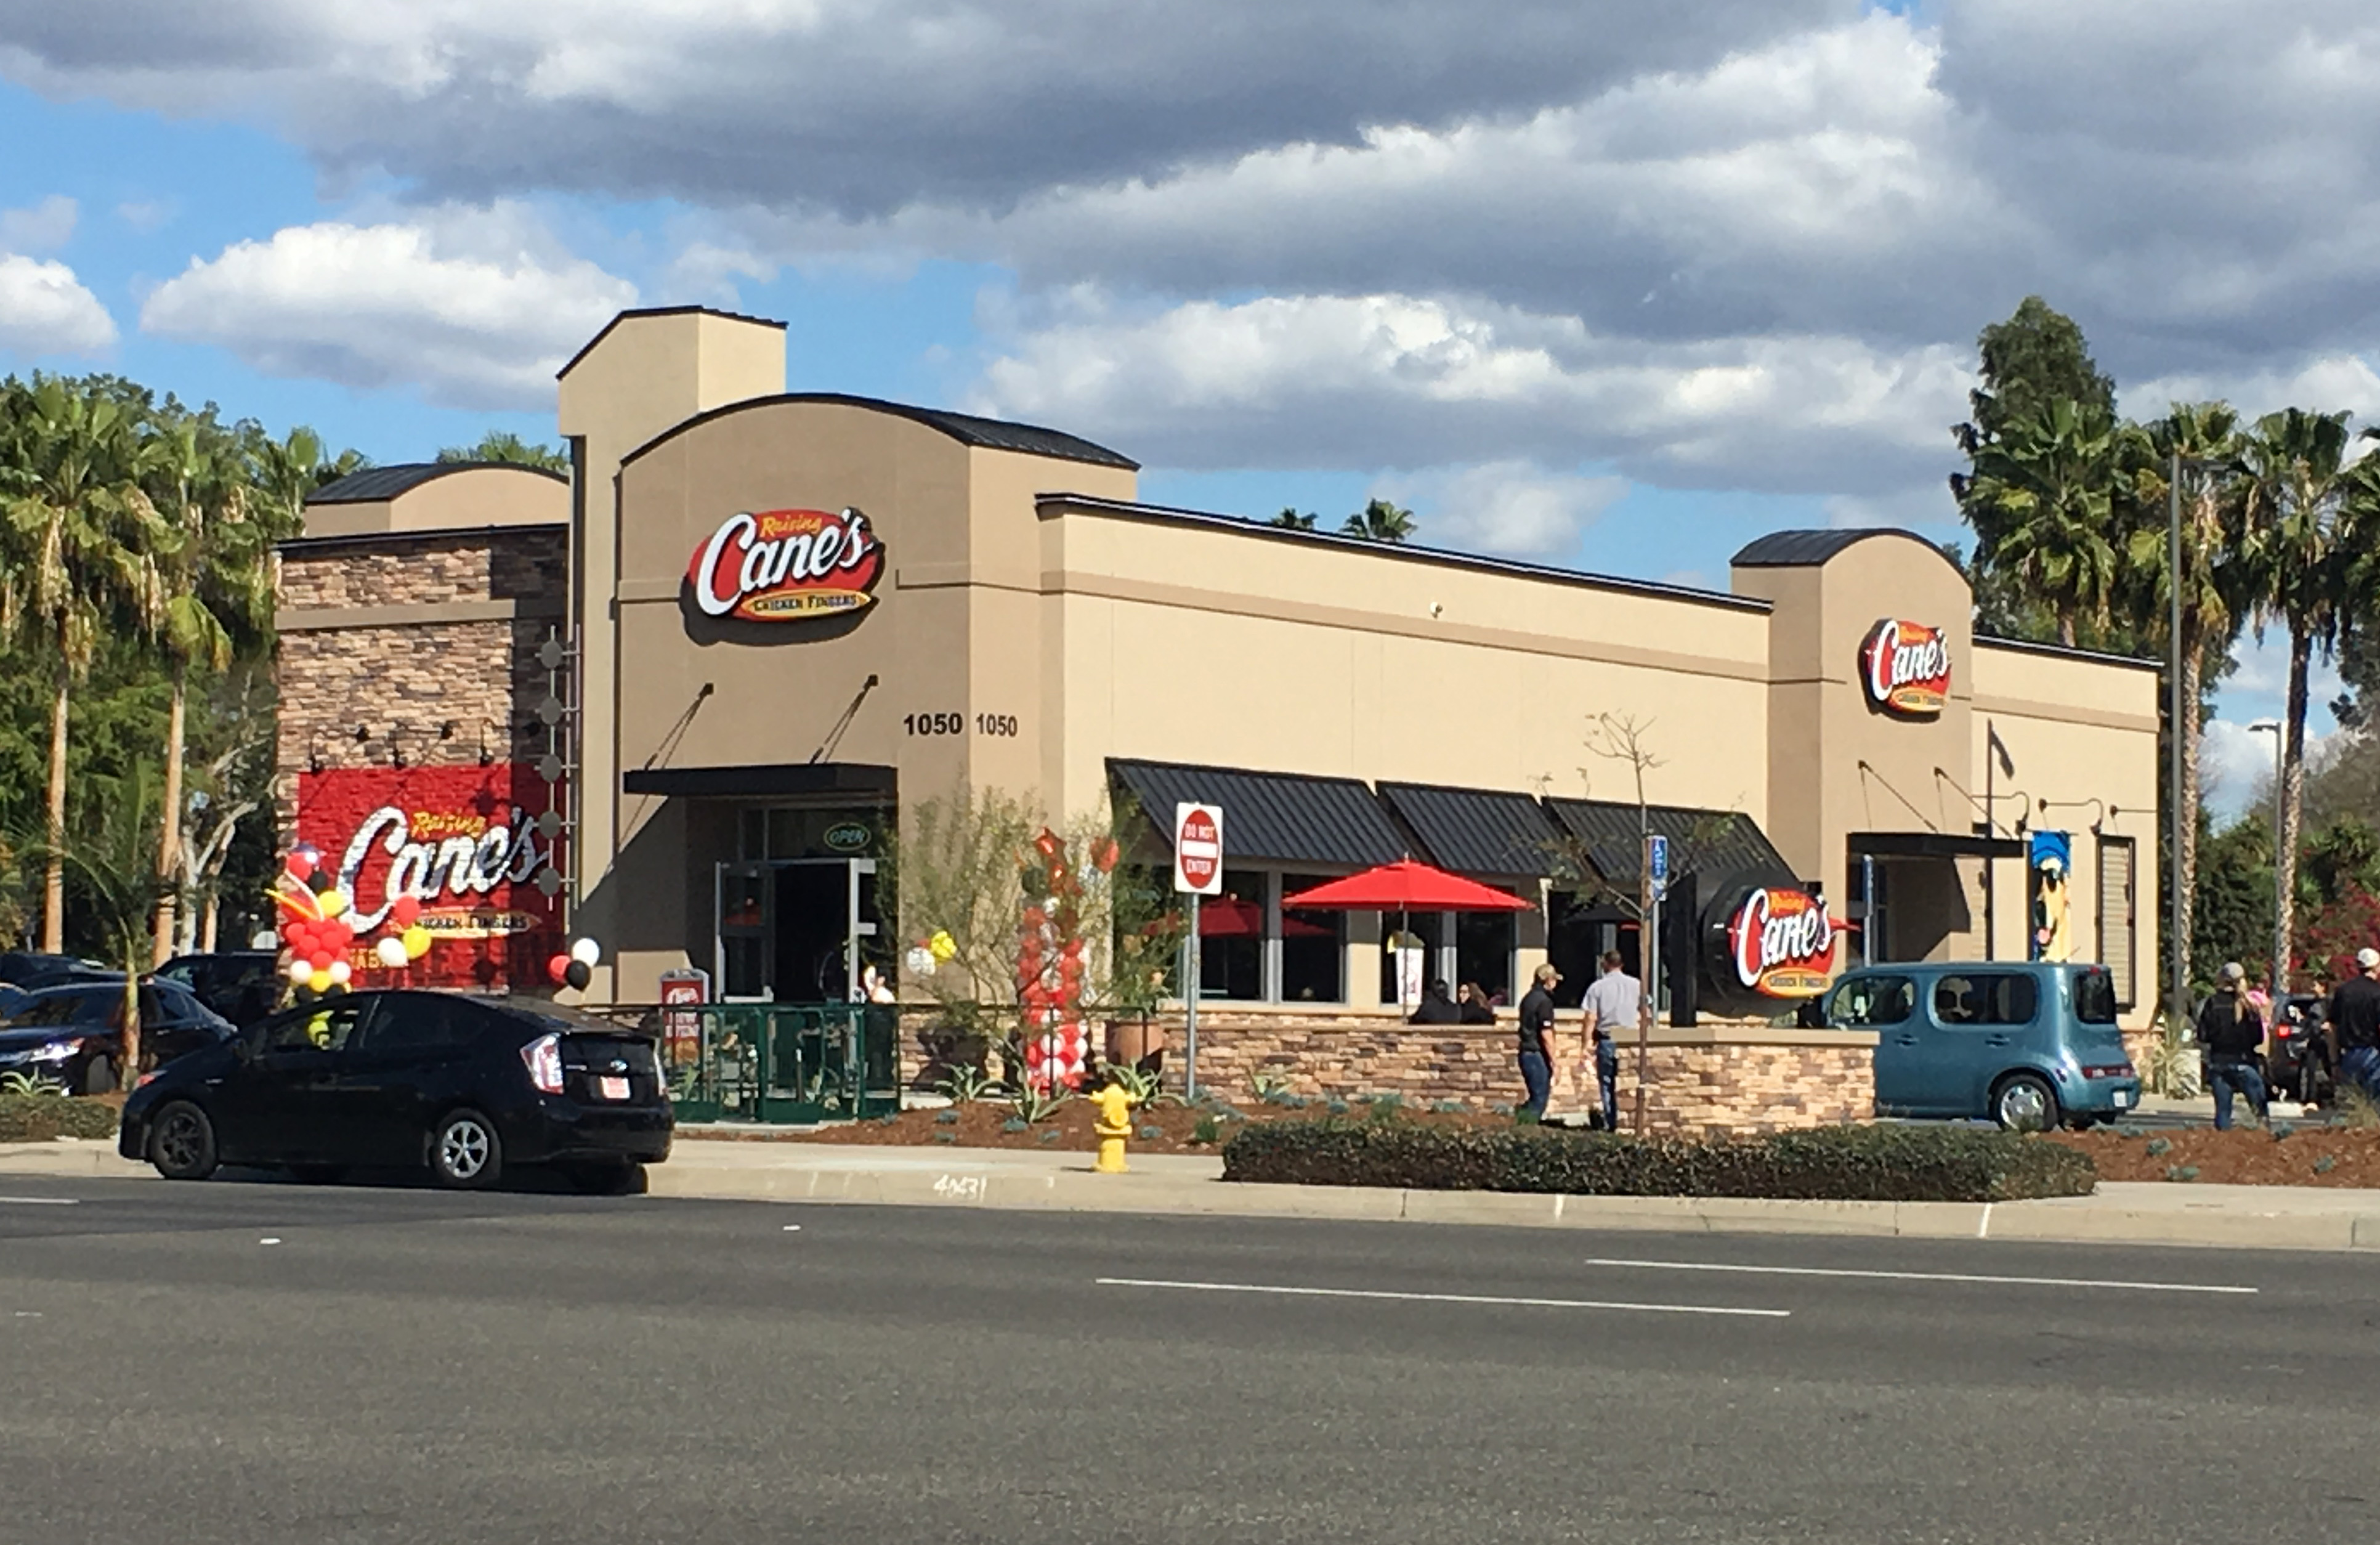 Hanley Investment Group Arranges Sale of New-Construction Single-Tenant Raising Cane's in St. Louis to Southern California Buyer for $5.03 Million